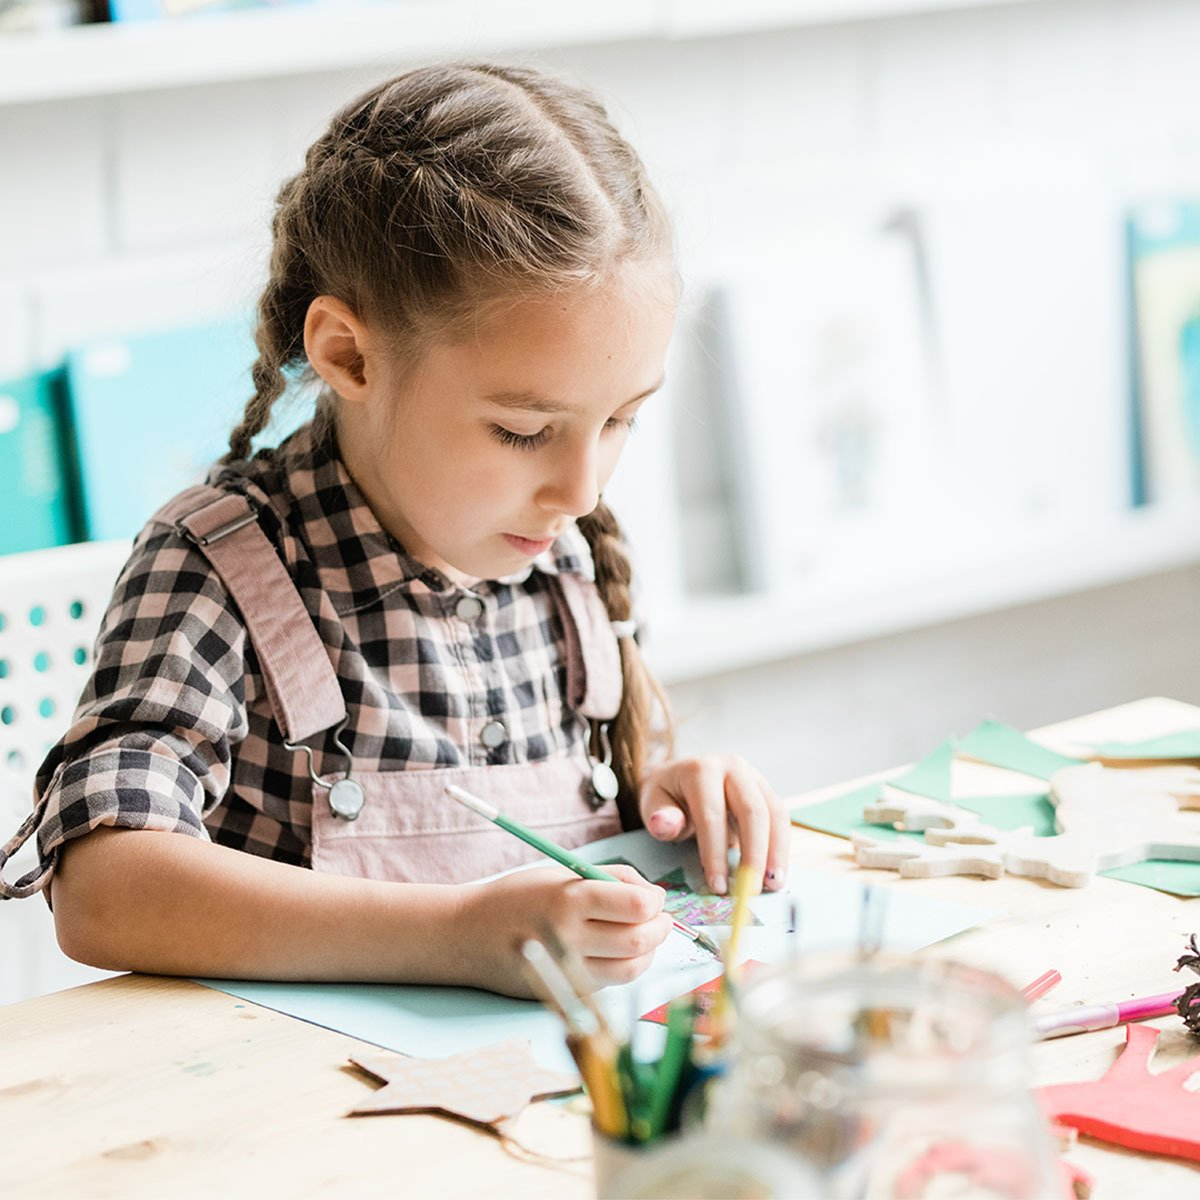 The 16 Best Art & Craft Subscription Boxes for Kids